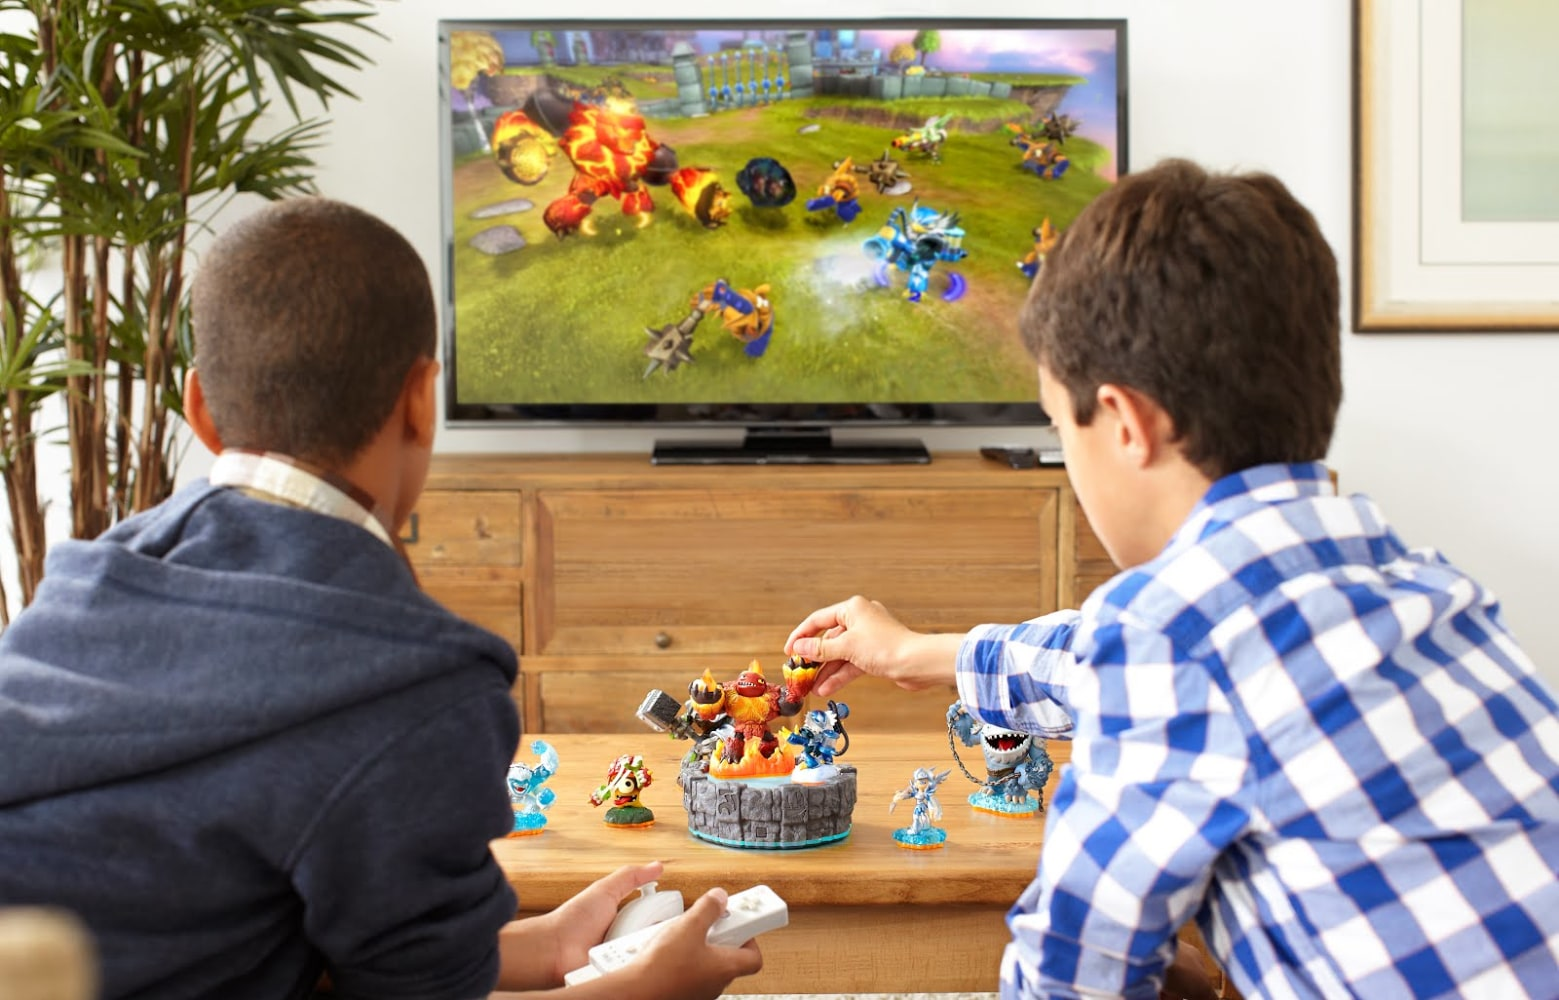 Toys For Life : Toy story interactive action figures are the latest video